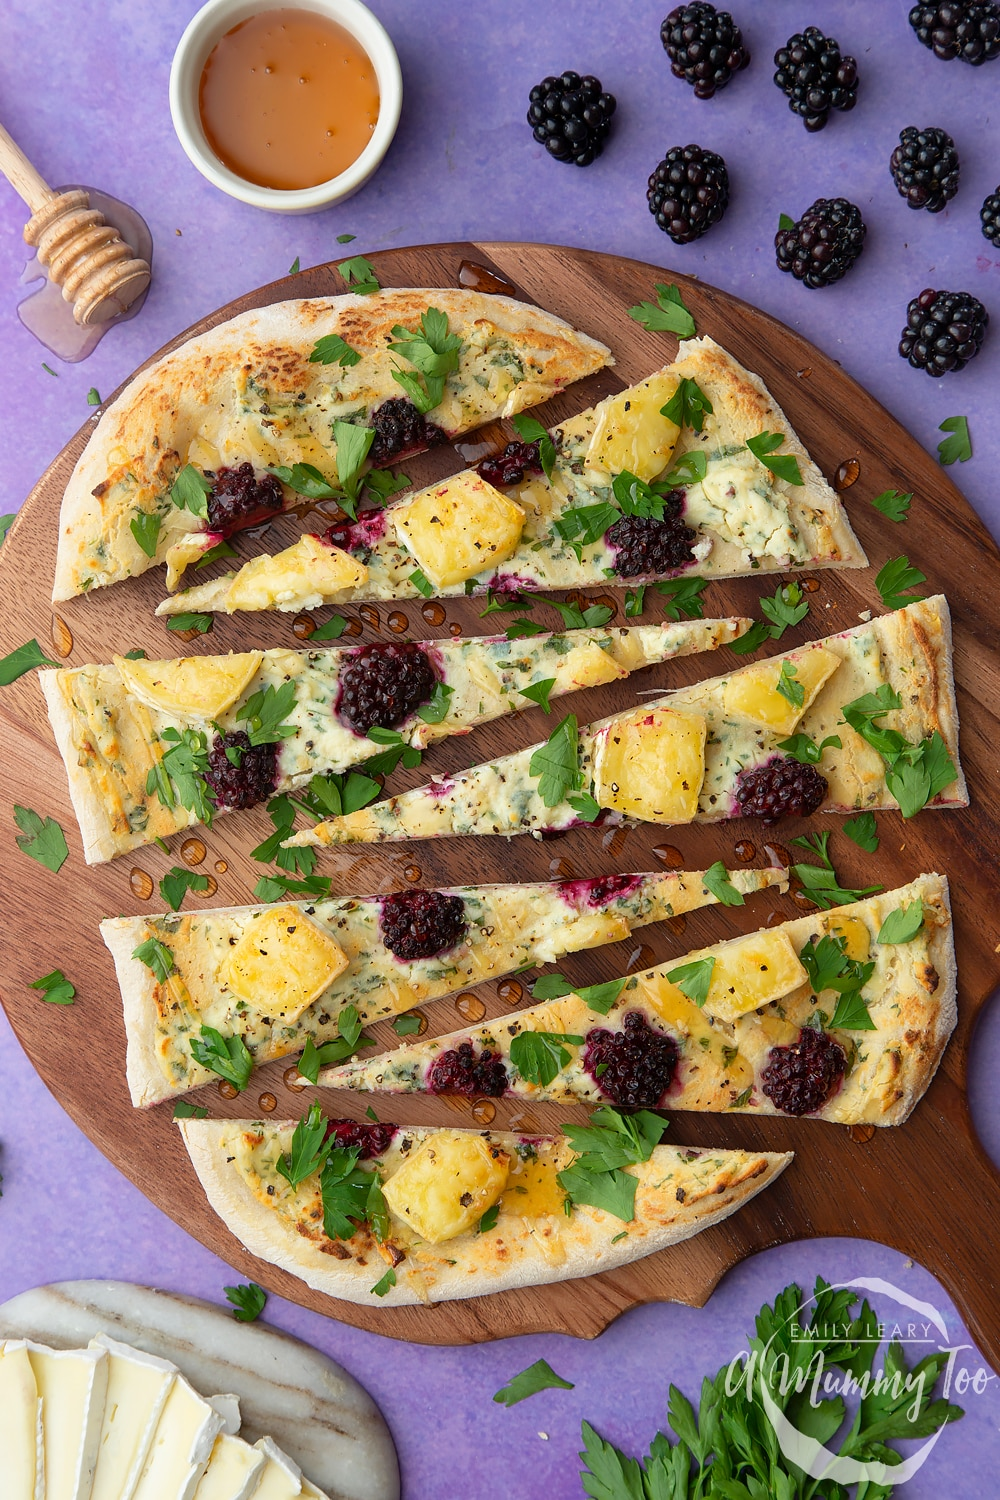 Brie and blackberry pizza sliced on a dark wooden board.